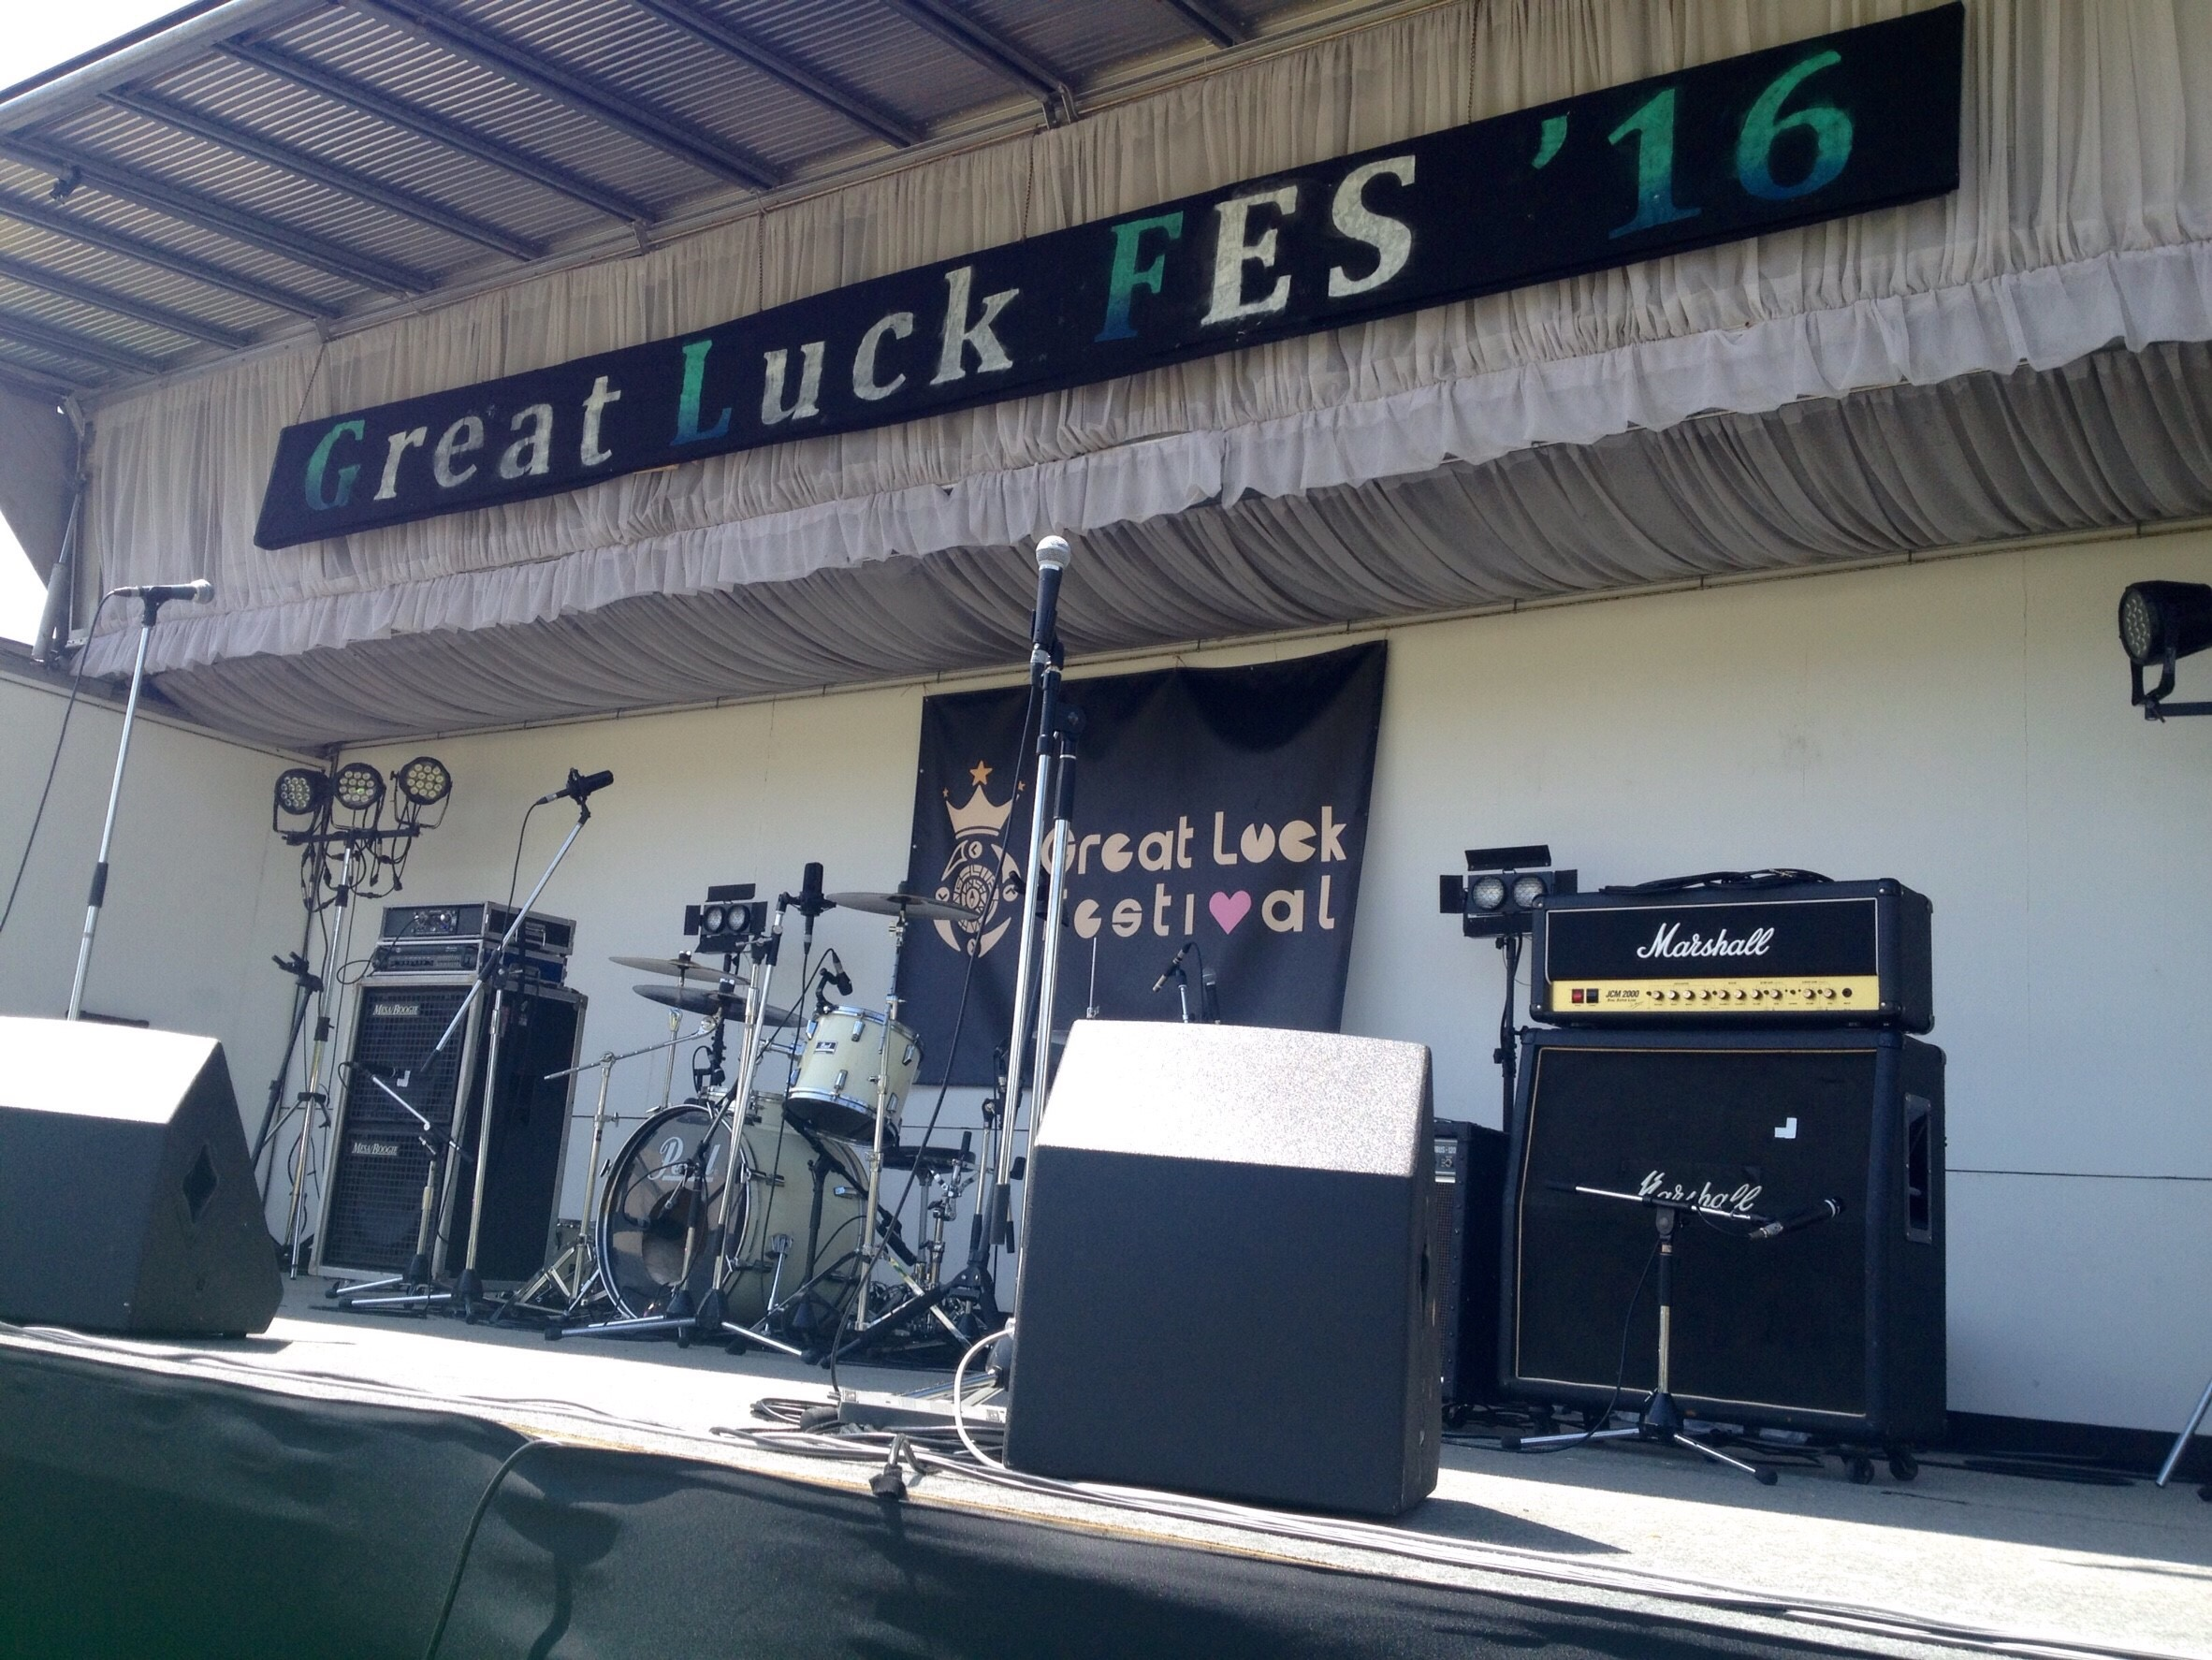 2016.5.28-29 Great Luck Fes'16